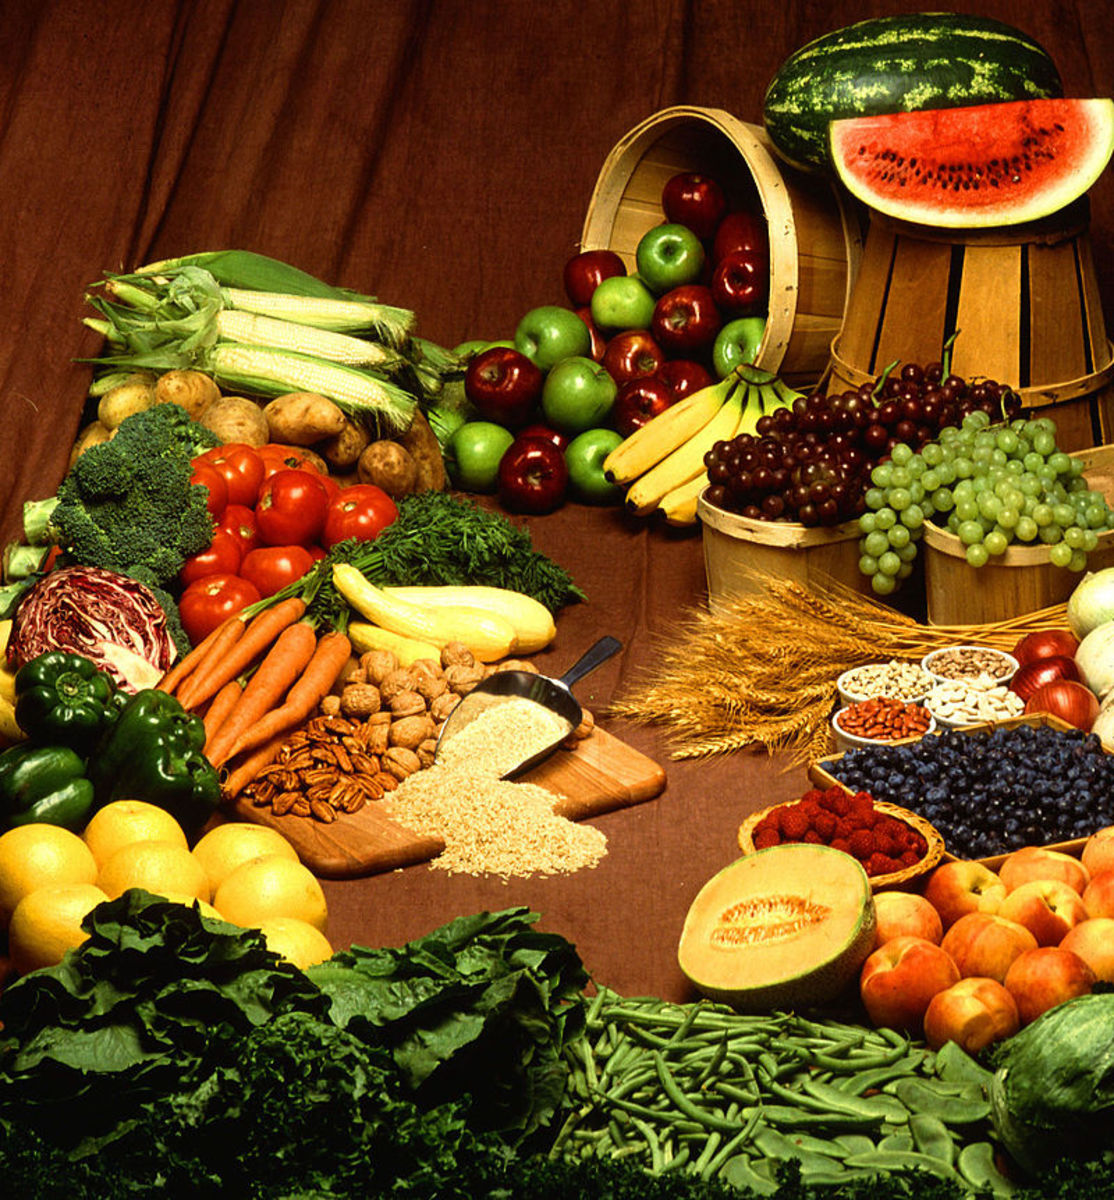 Carrots and green vegetables are necessary to maintain good eye health